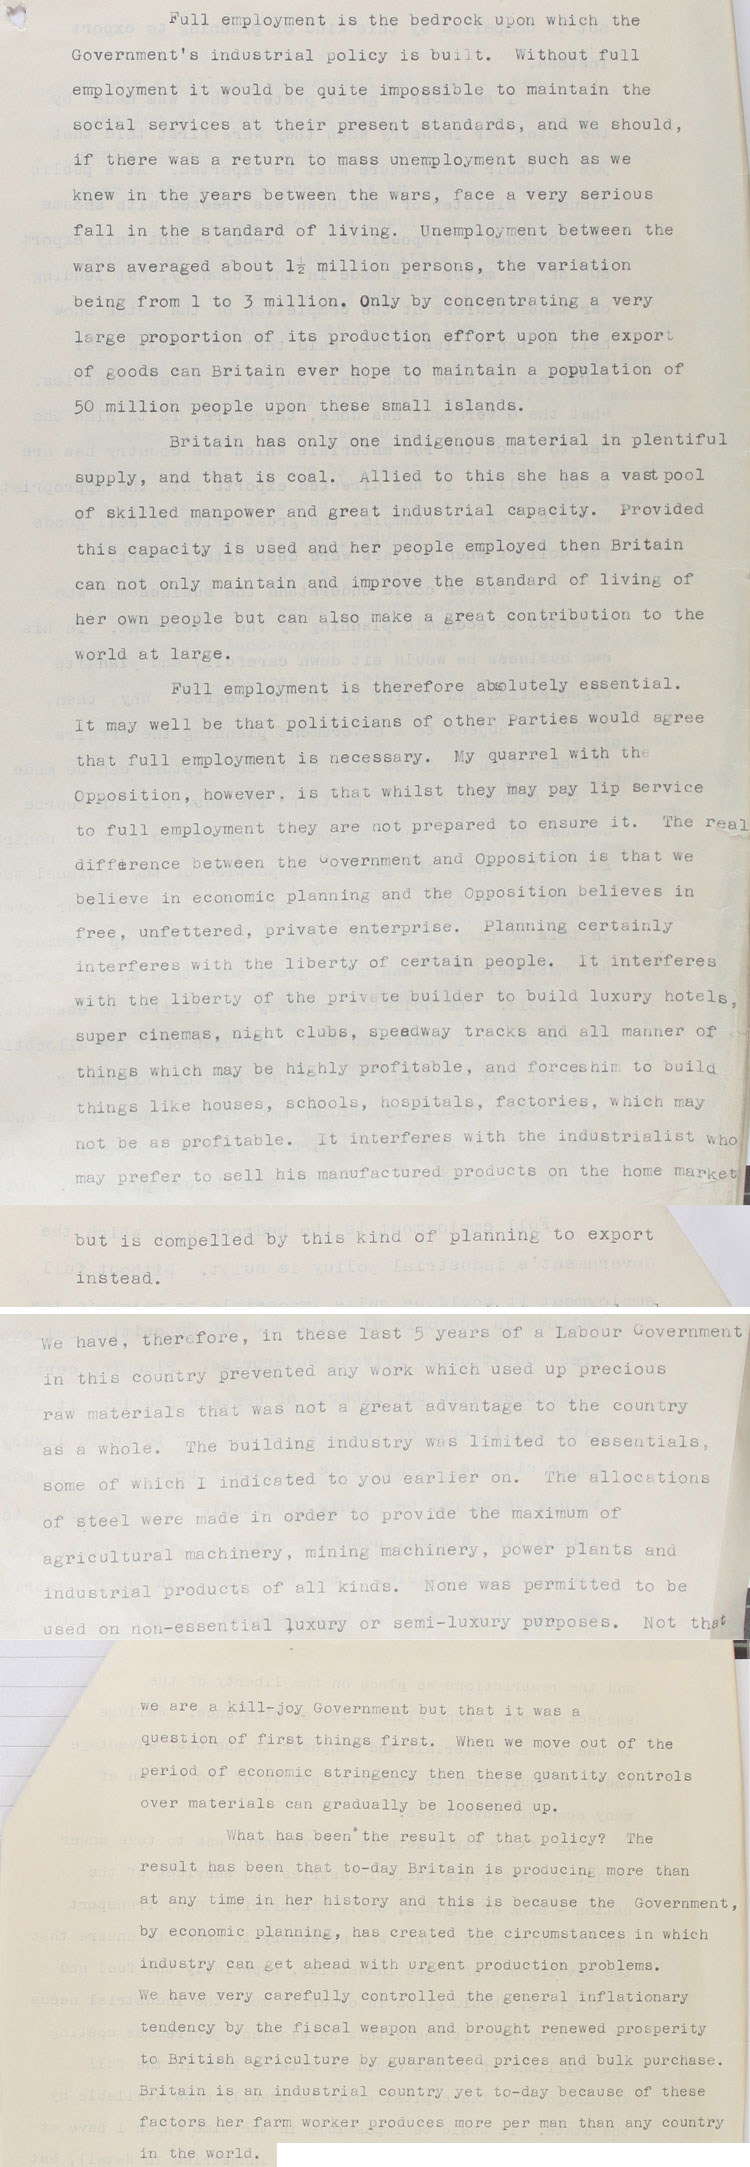 Extract of speech given to the German Section of the Foreign Office by Alfred Robens MP, Parliamentary Secretary for Ministry of Fuel & Power, 1st November, 1950 (LAB 43/35)